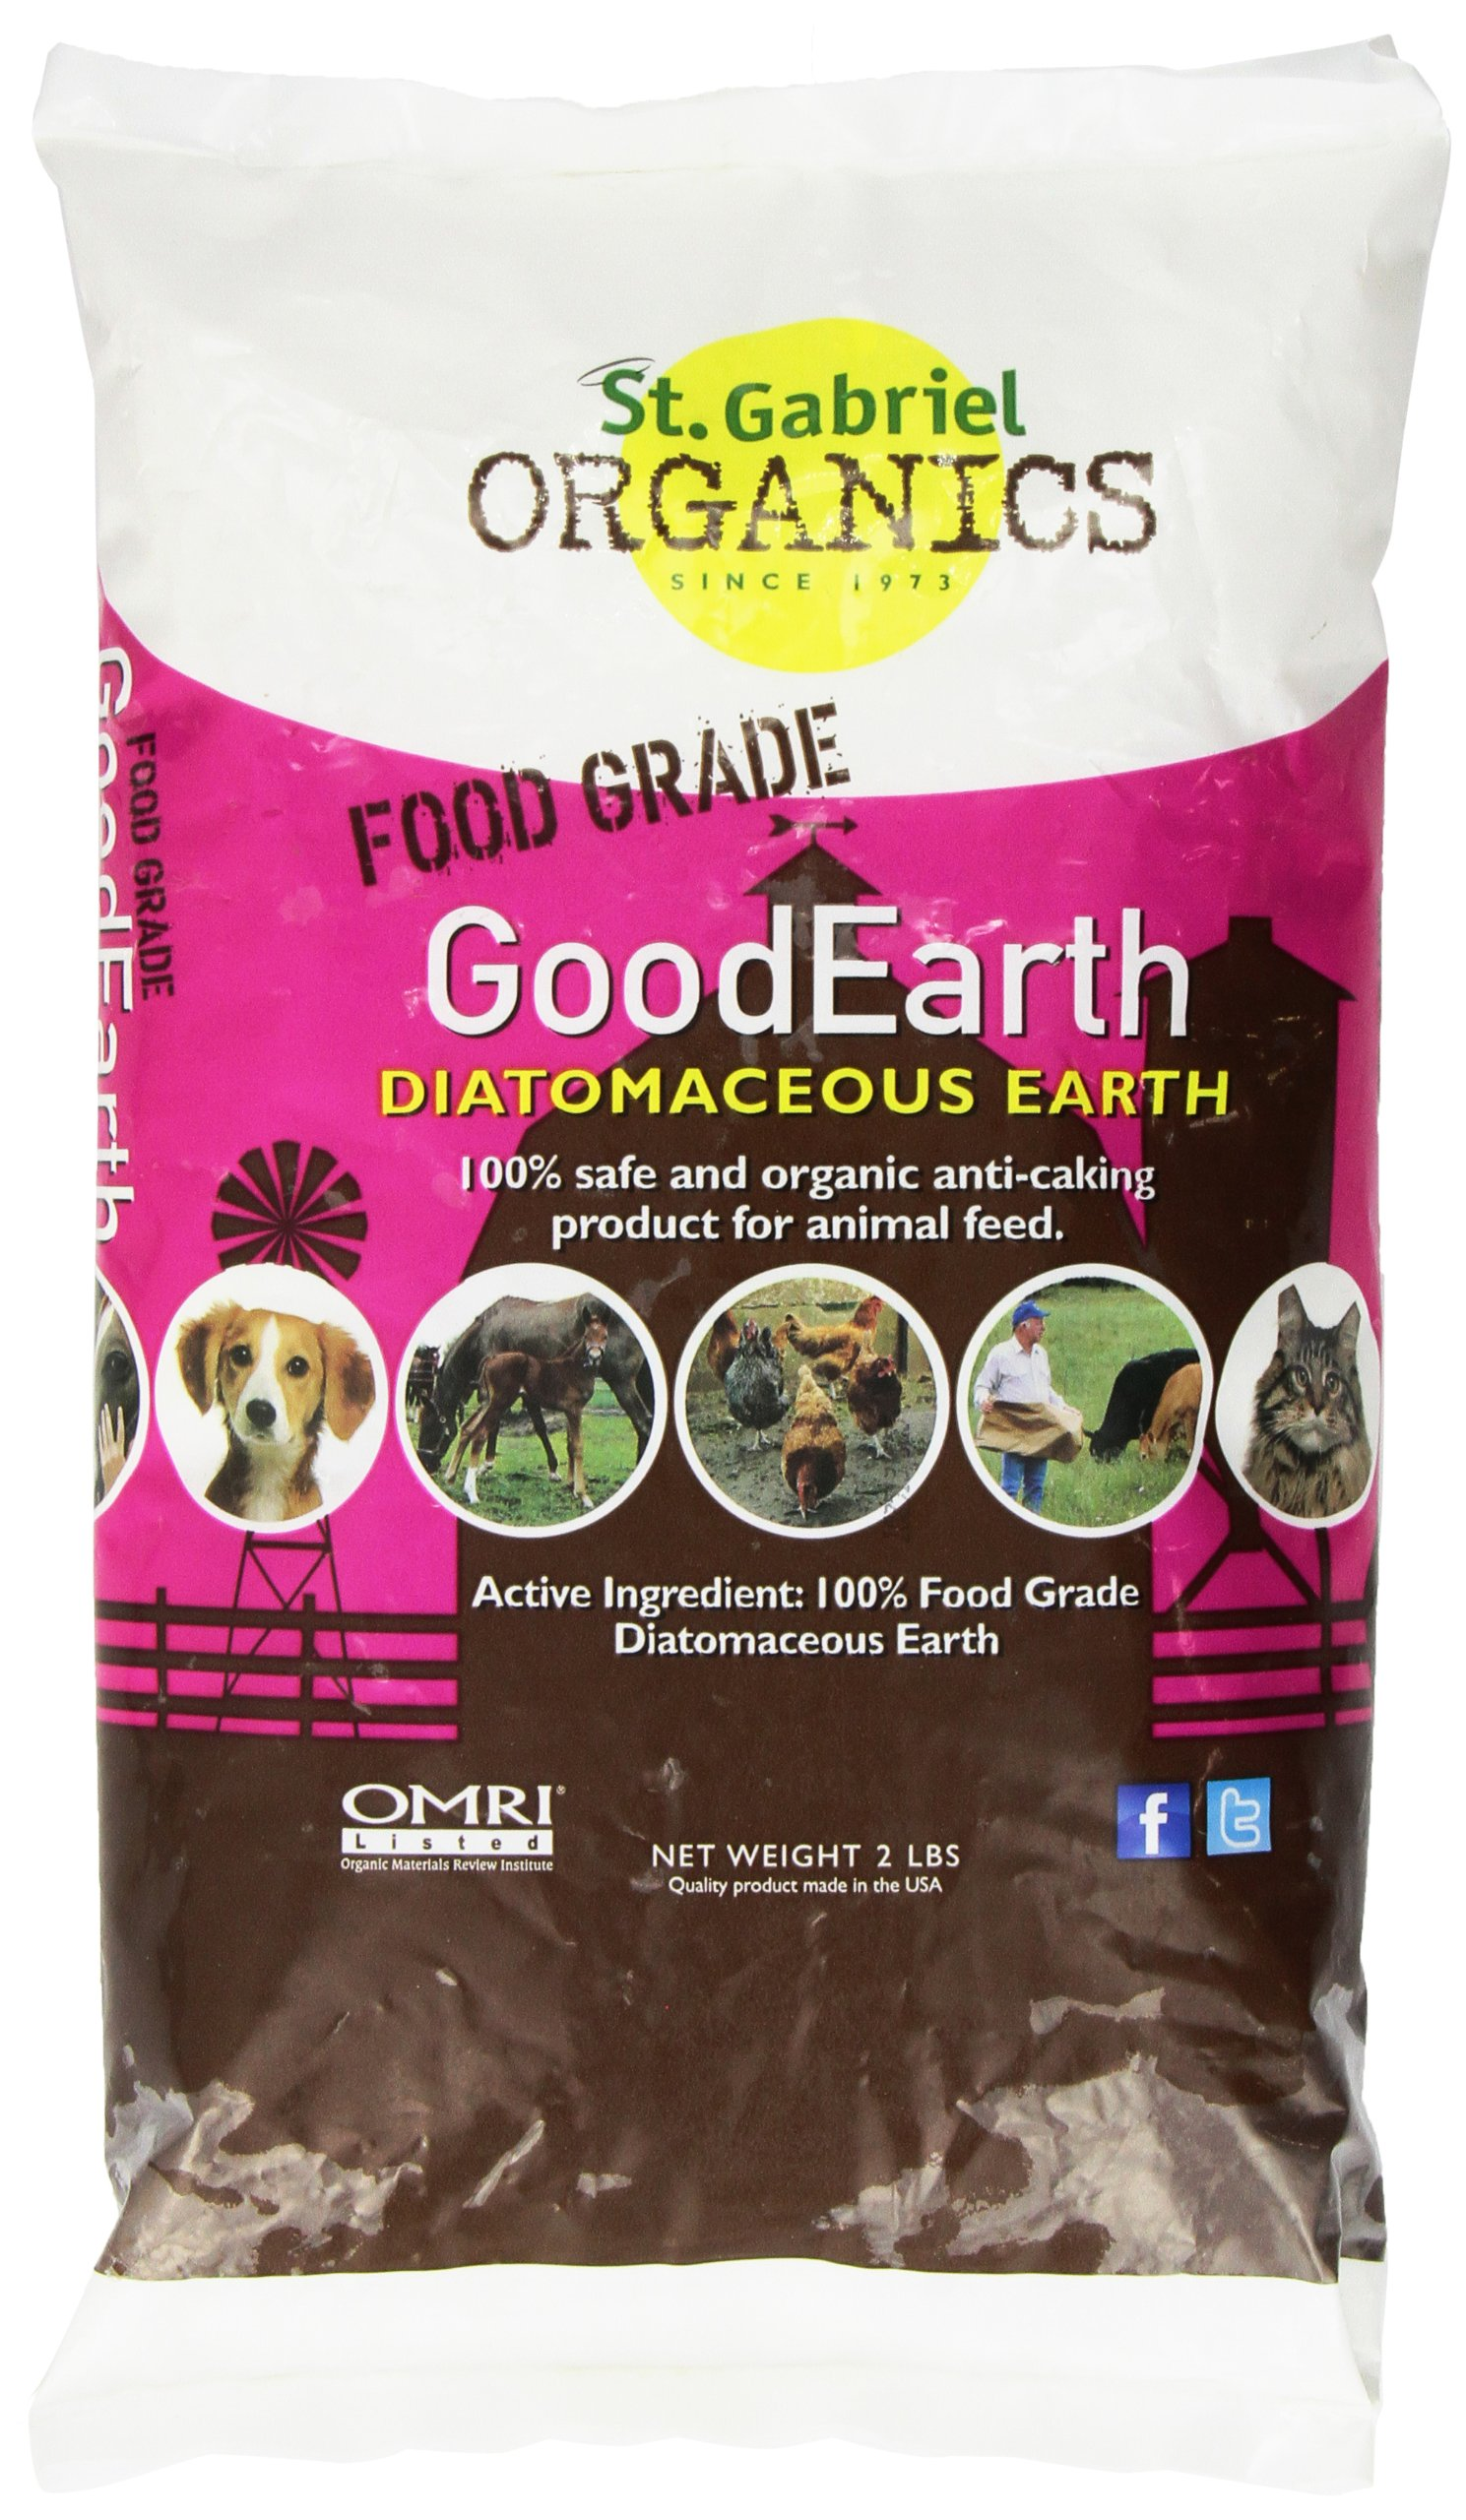 GoodEarth Diatomaceous Earth Supplement for Chicken and Farm AnimalsNET WT 2